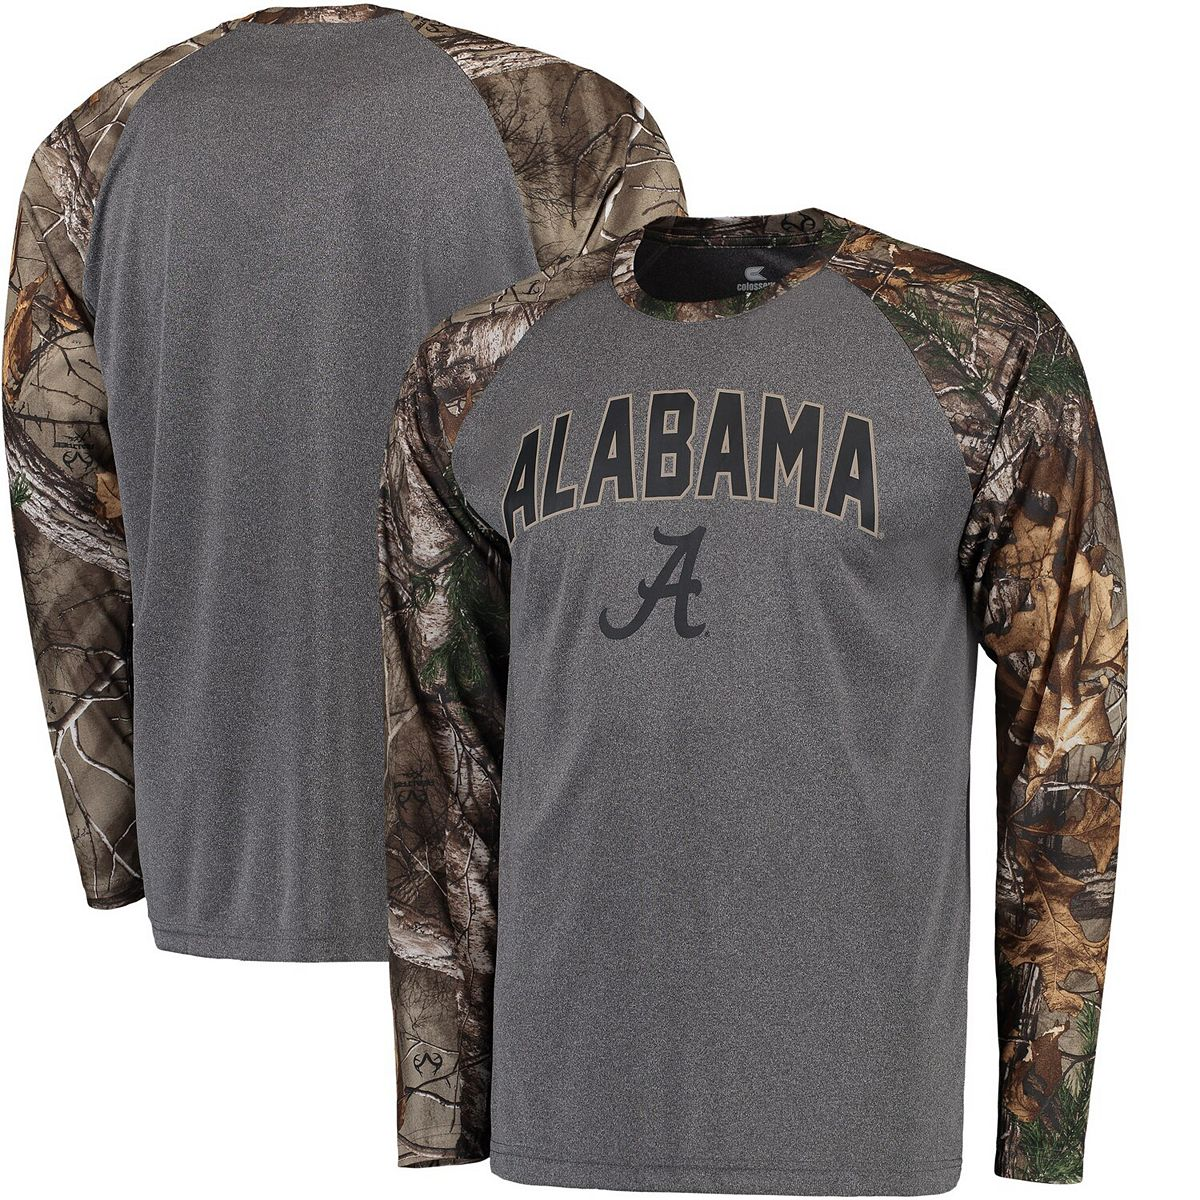 Men's Colosseum Heathered Gray/Realtree Camo Alabama Crimson Tide Break Action Long Sleeve Raglan T-Shirt 7cFhc